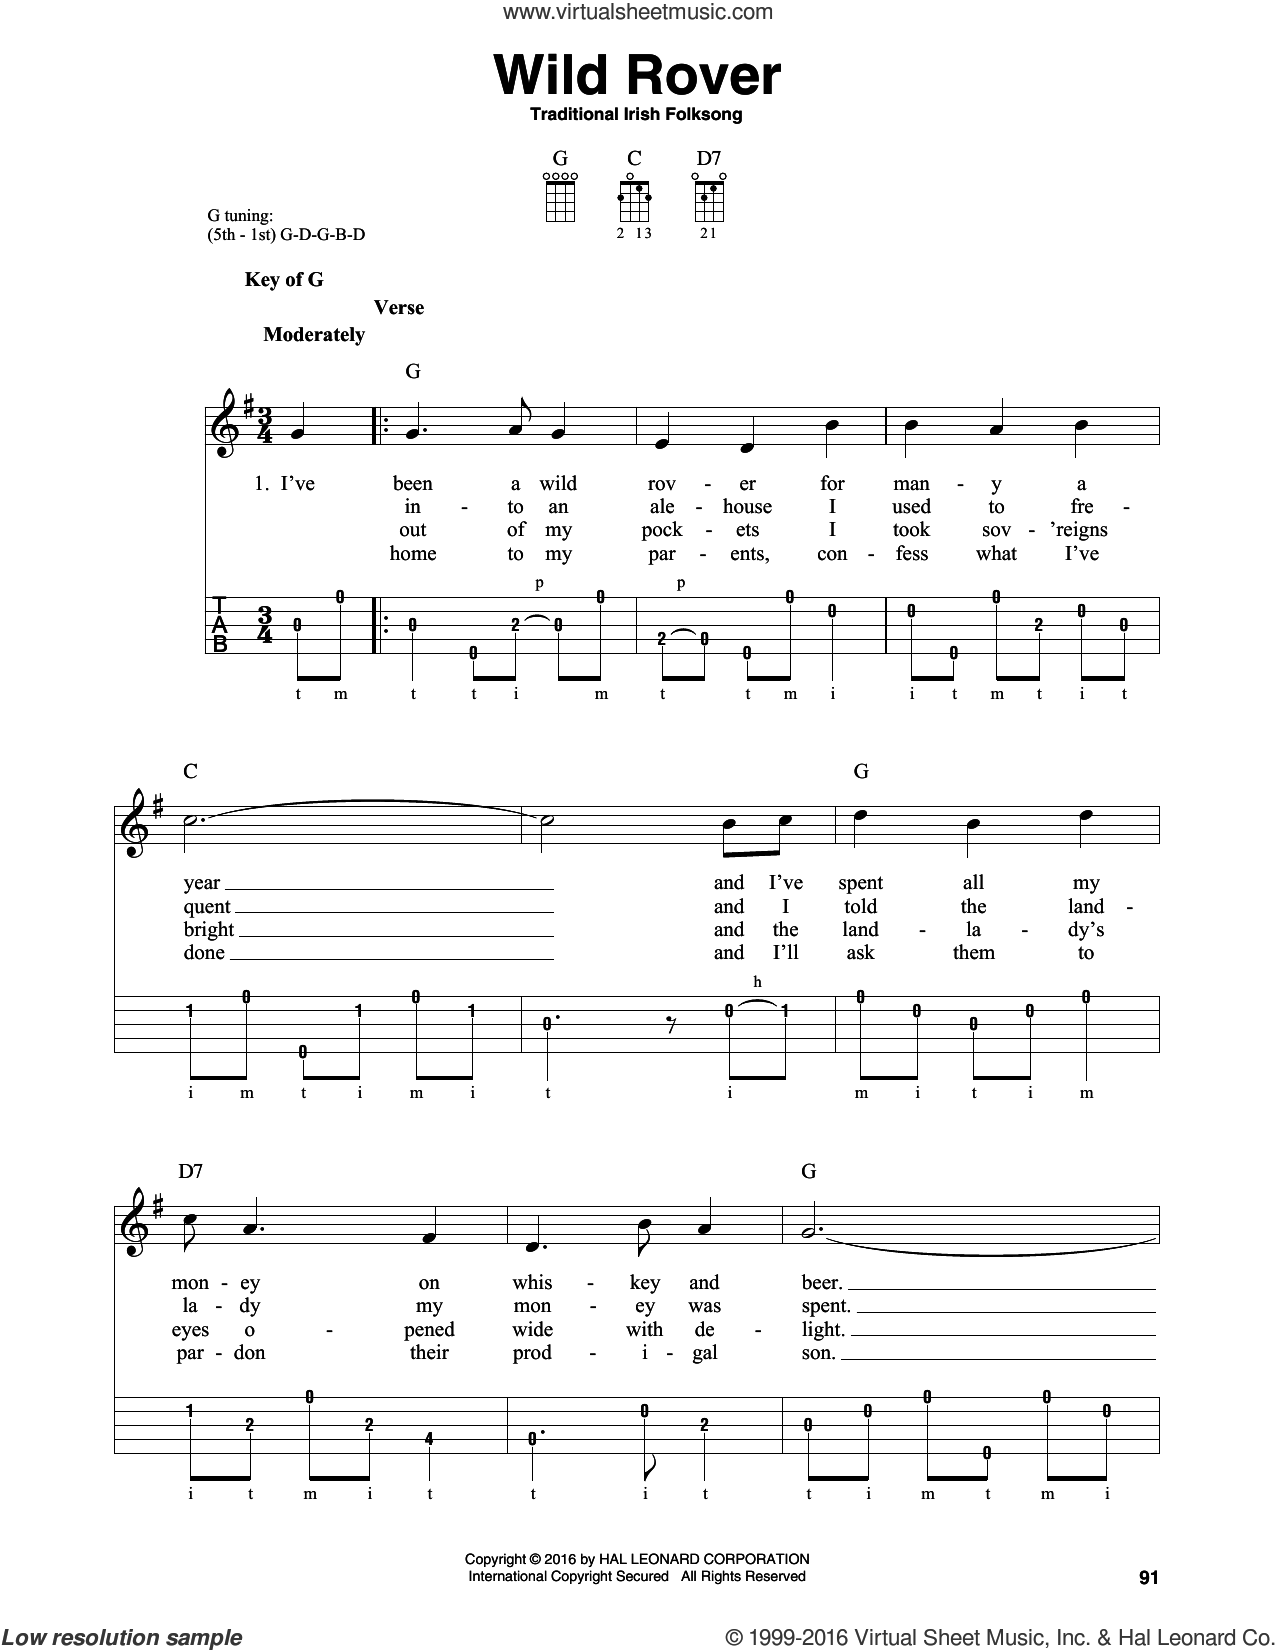 Wild Rover sheet music for banjo solo, intermediate skill level